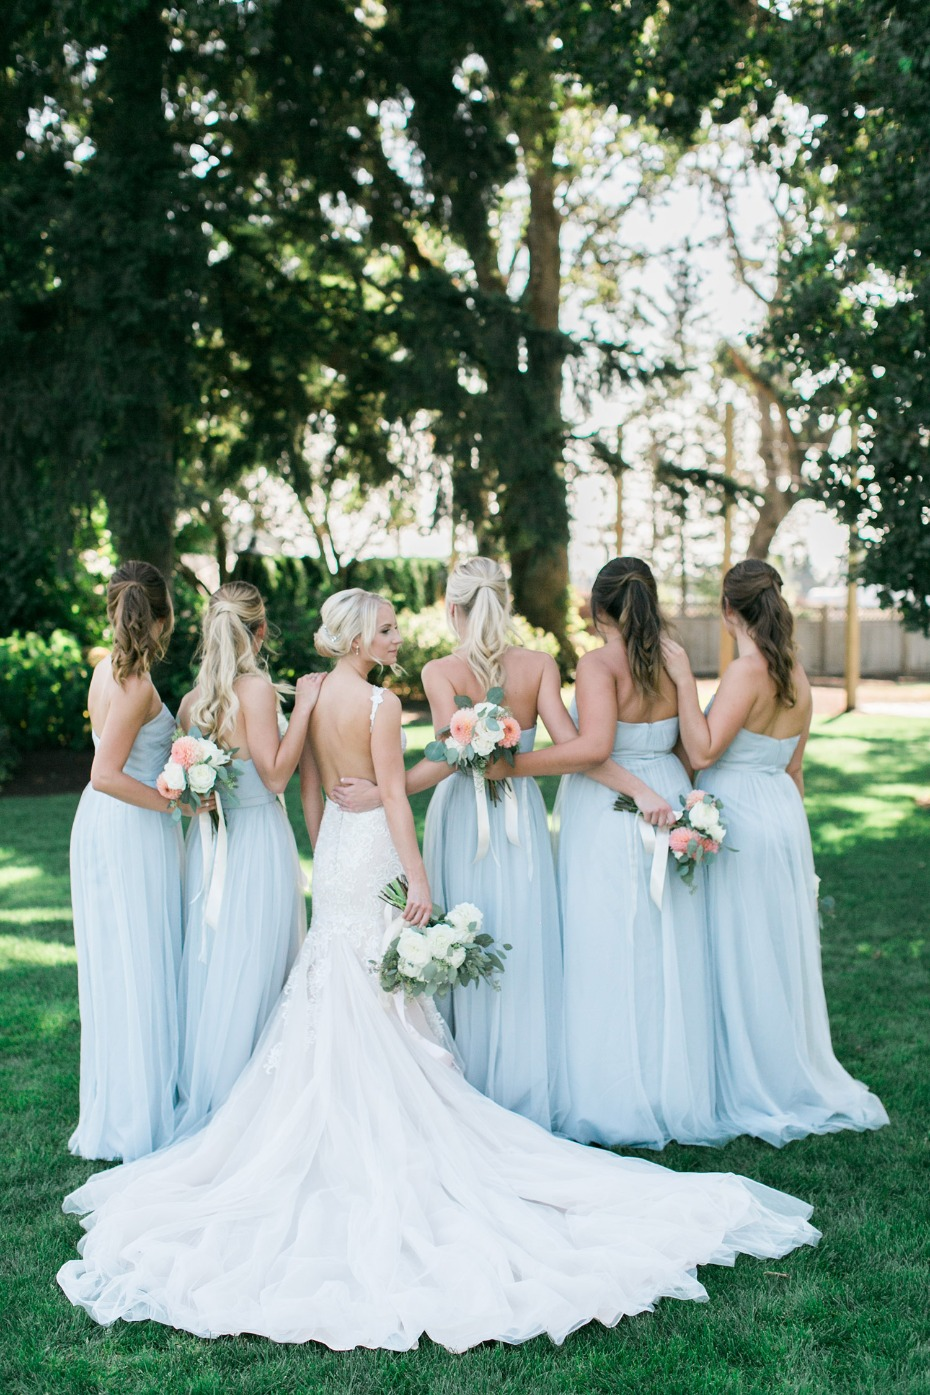 Bridesmaids in matching blue gowns